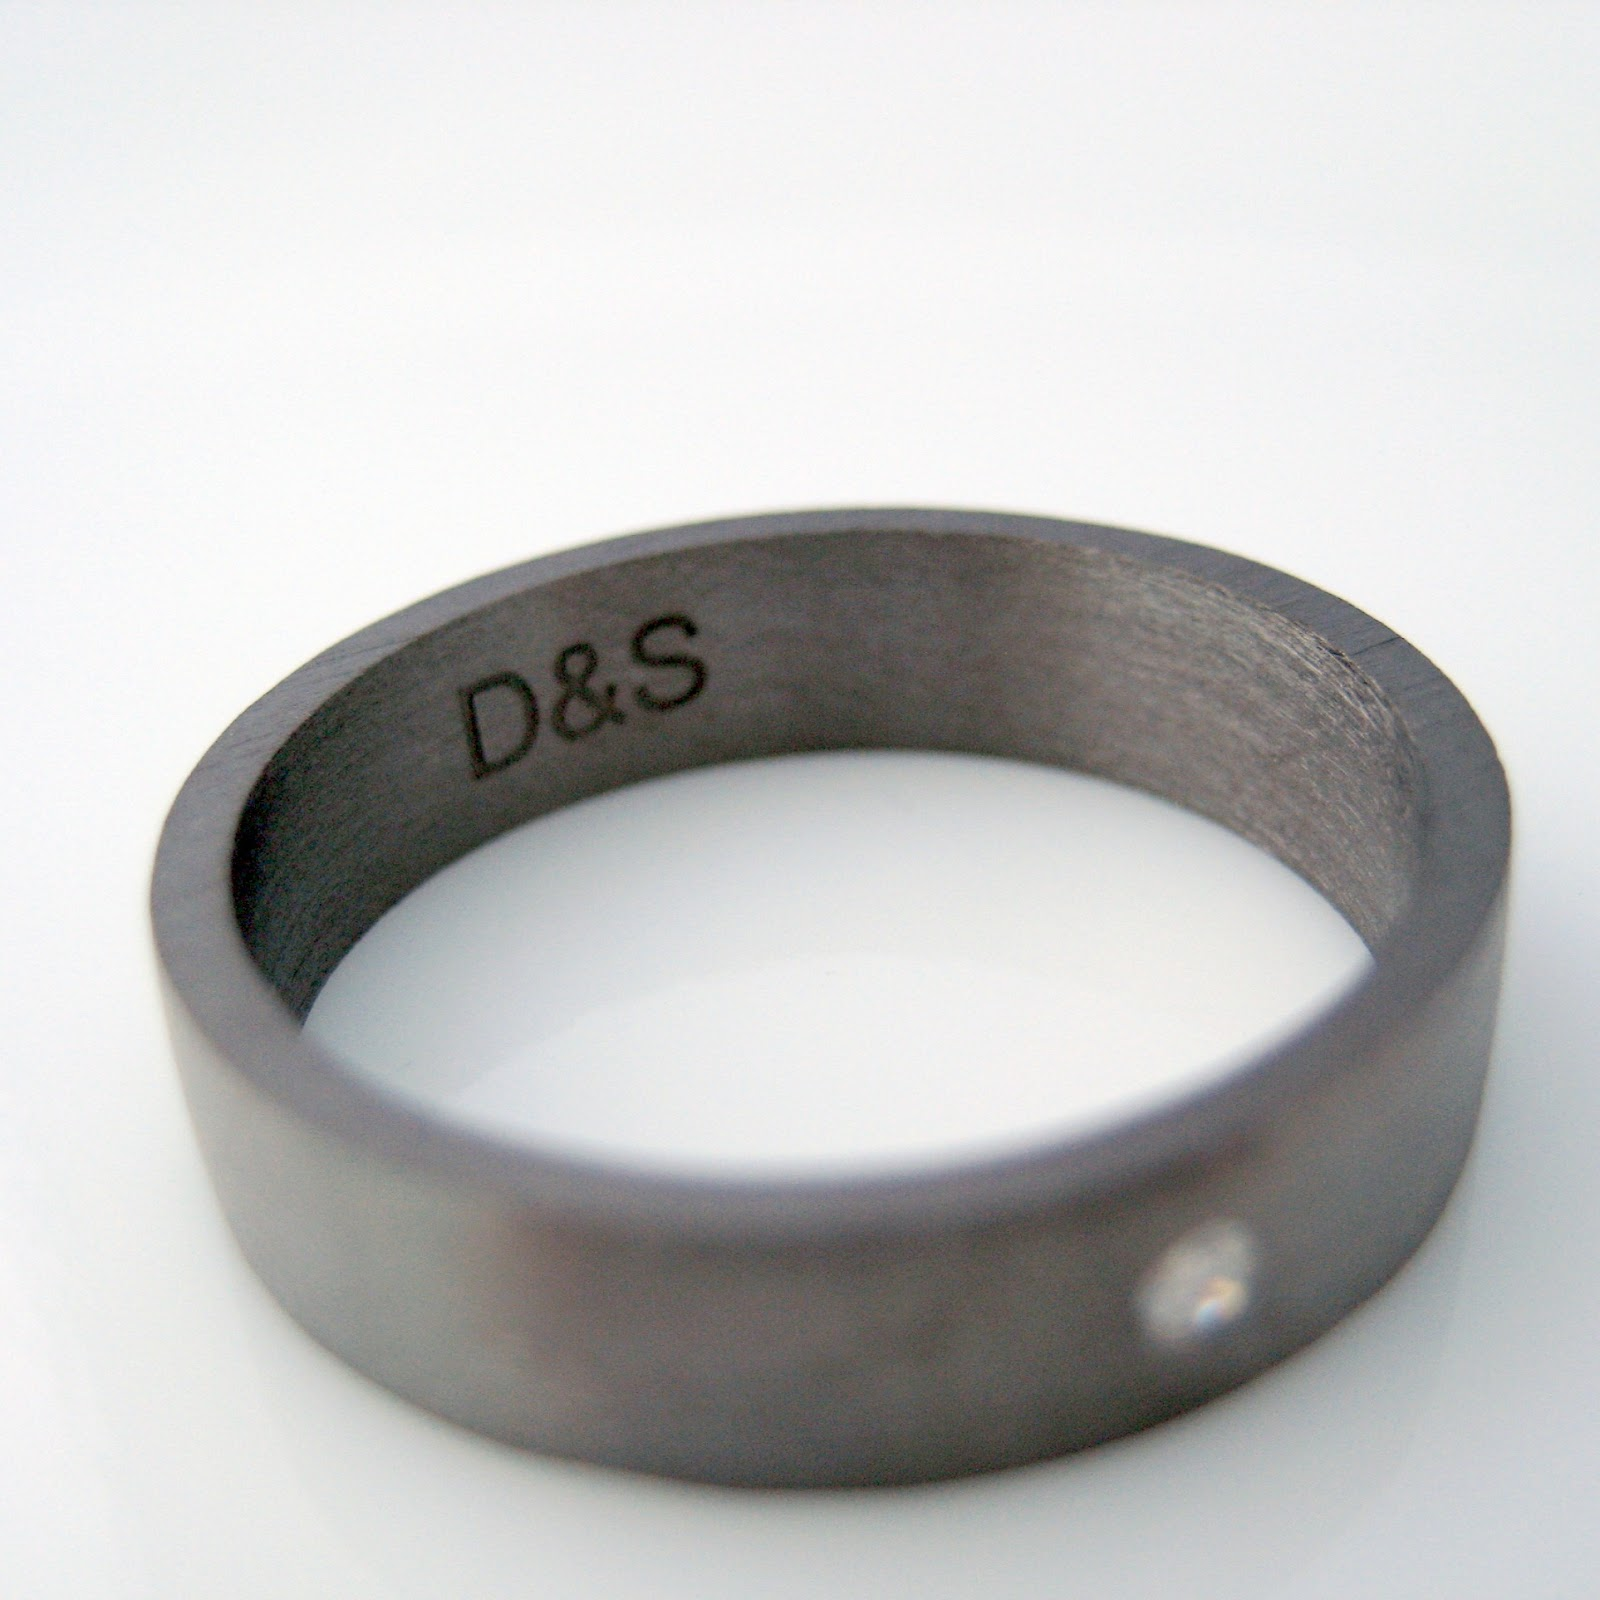 Engraving On Wedding Bands